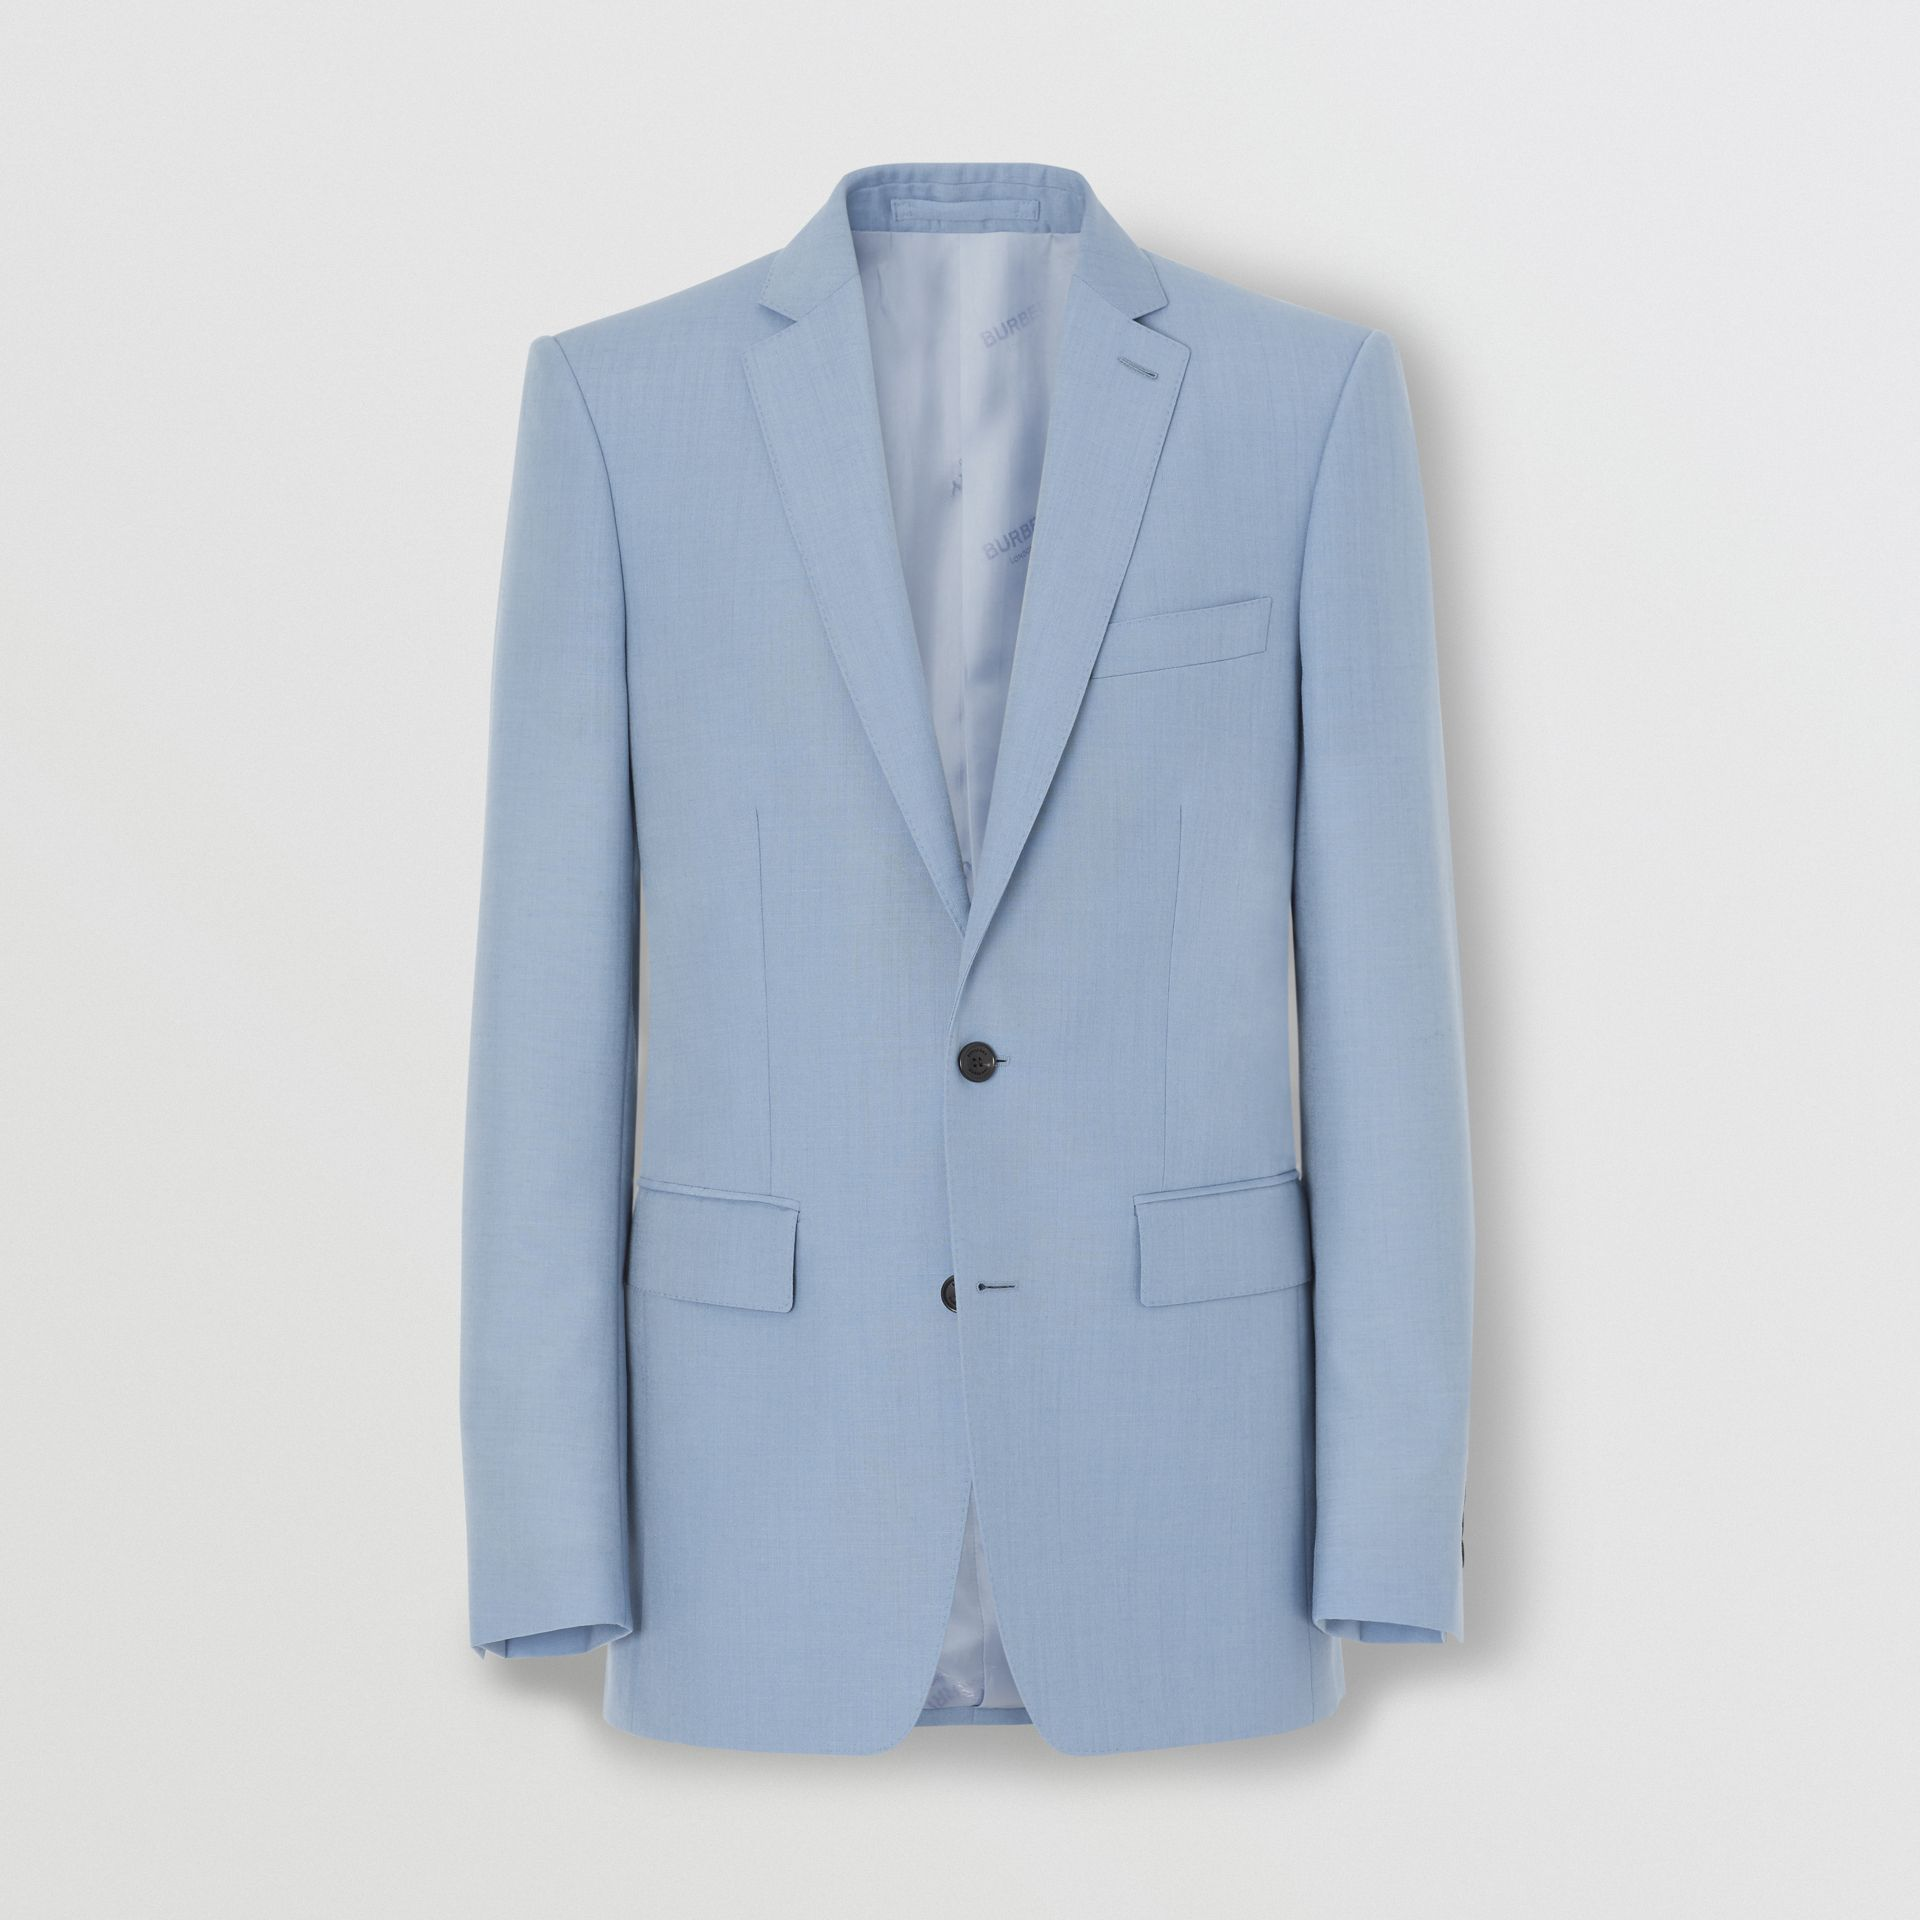 Classic Fit Wool Mohair Tailored Jacket in Pale Blue - Men | Burberry - gallery image 3